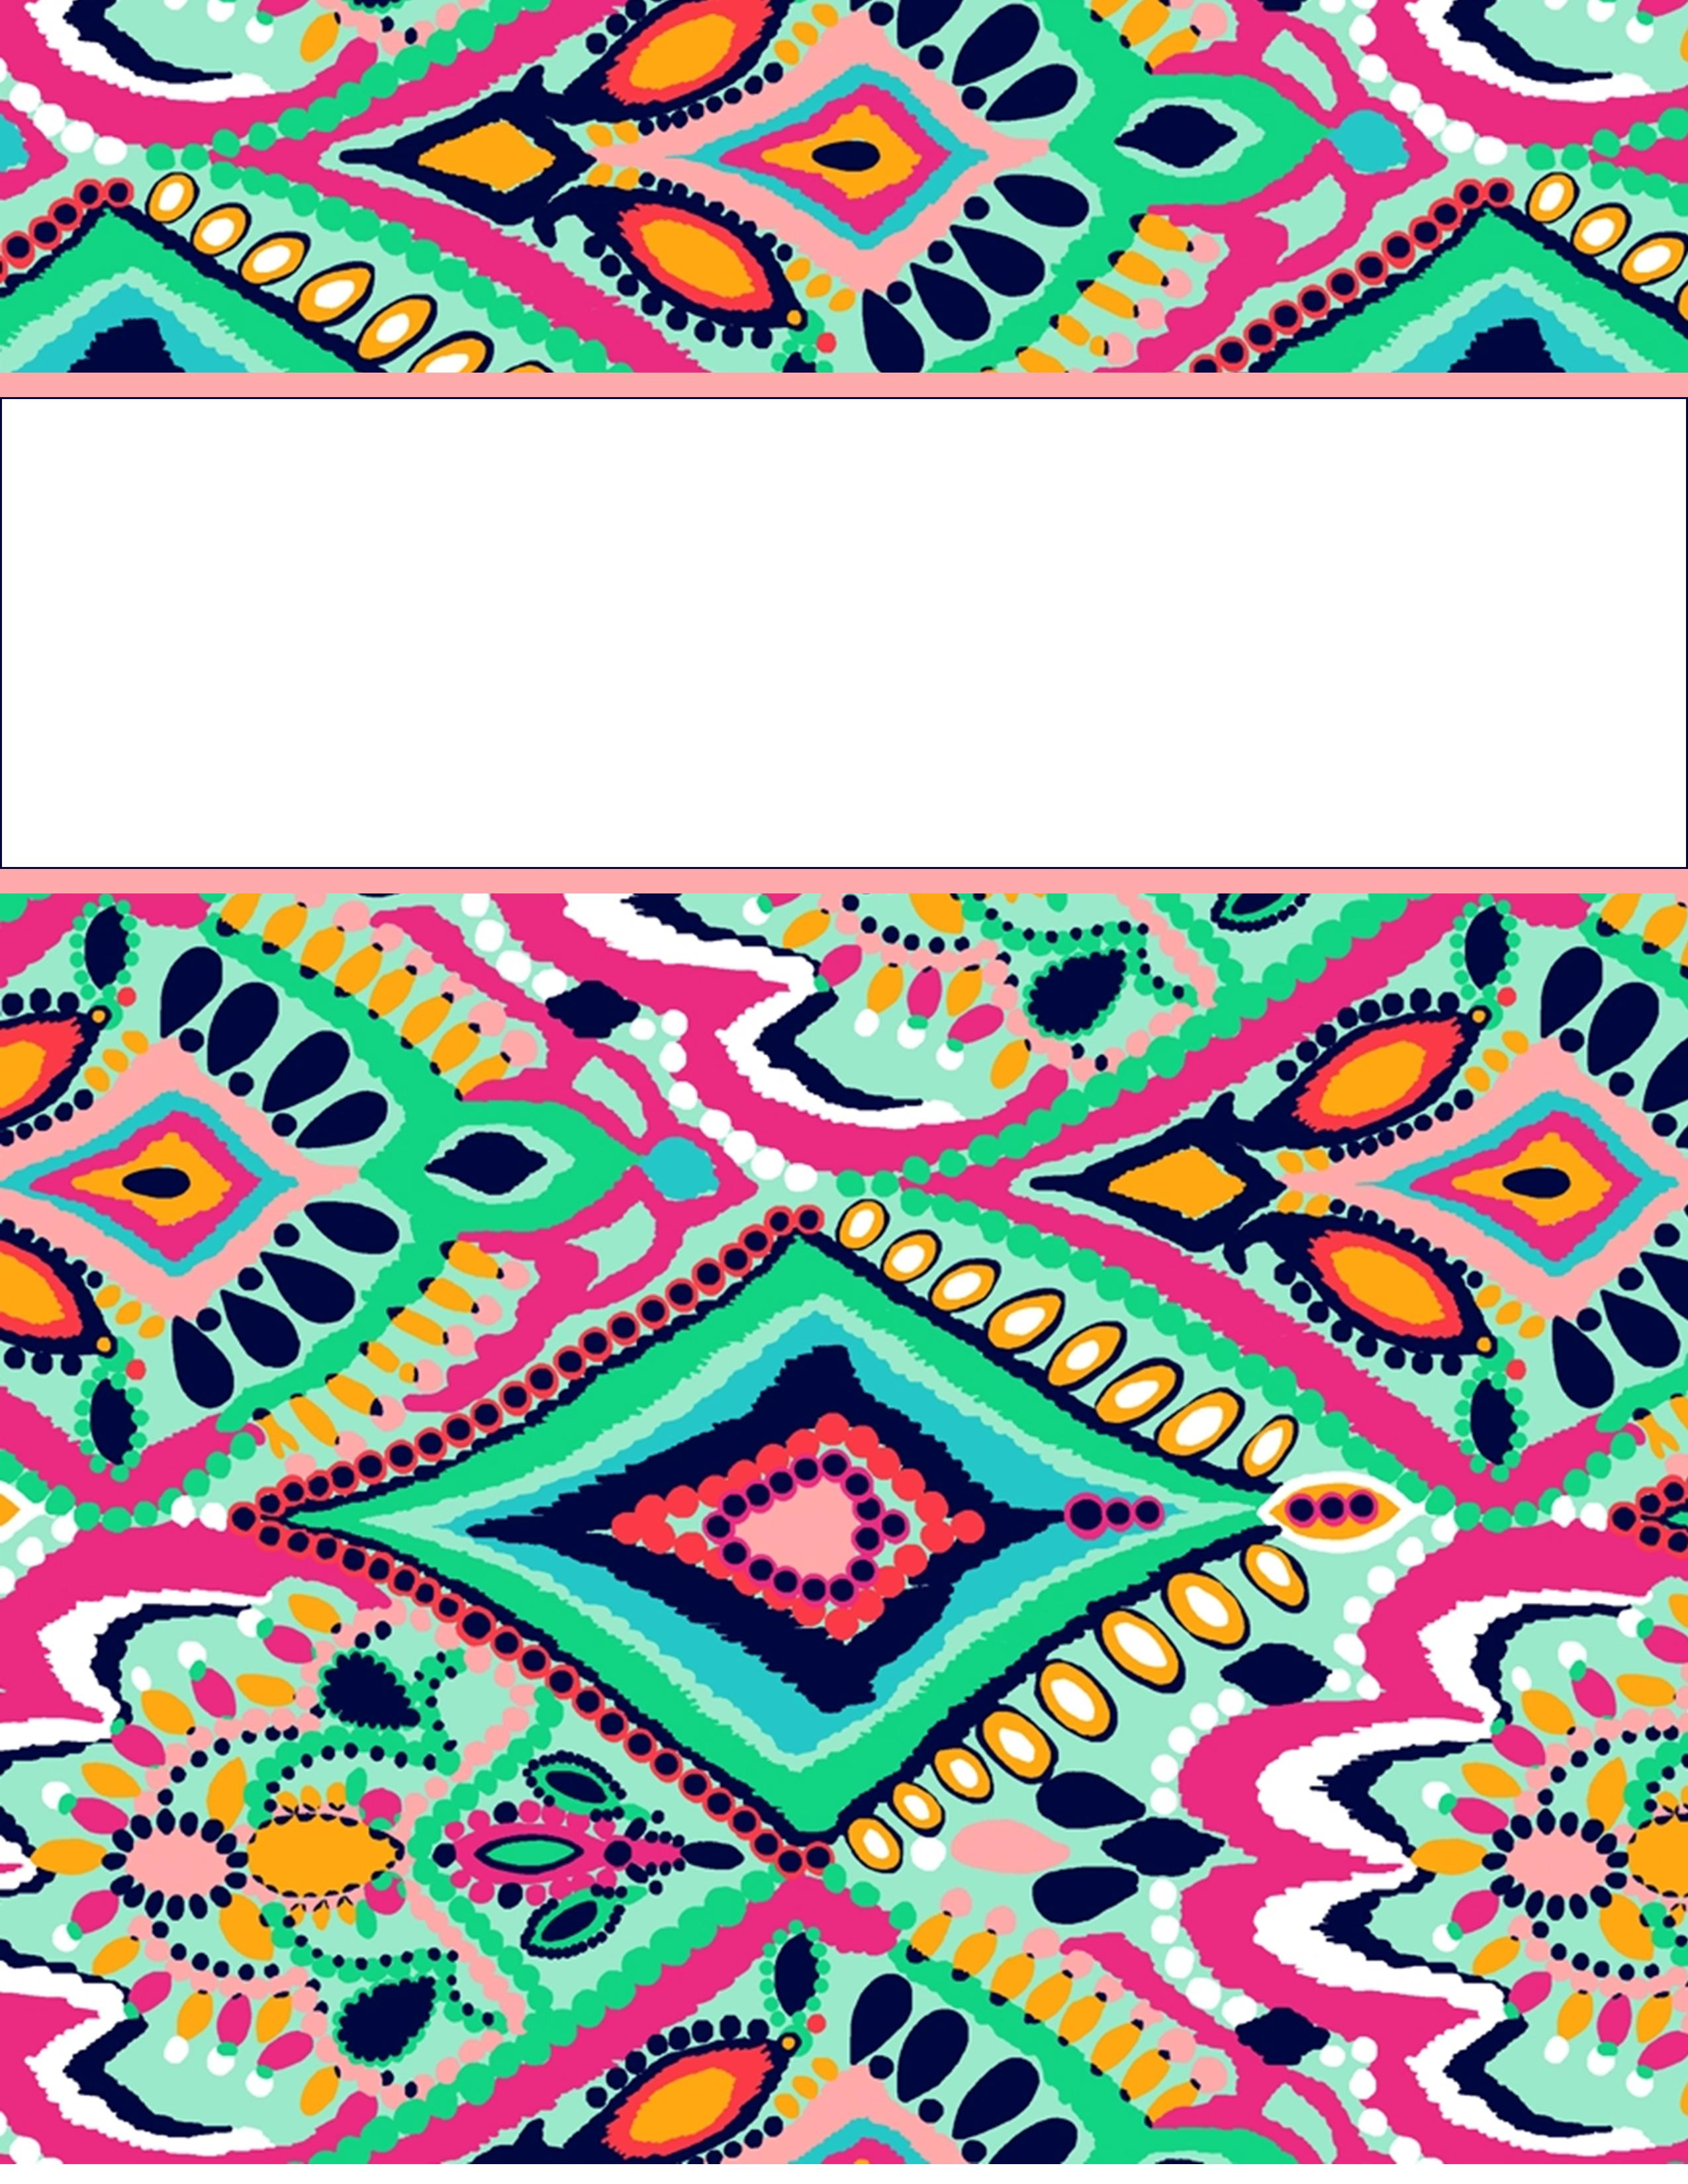 12 Binder Covers Design Template Images Printable Binder Covers